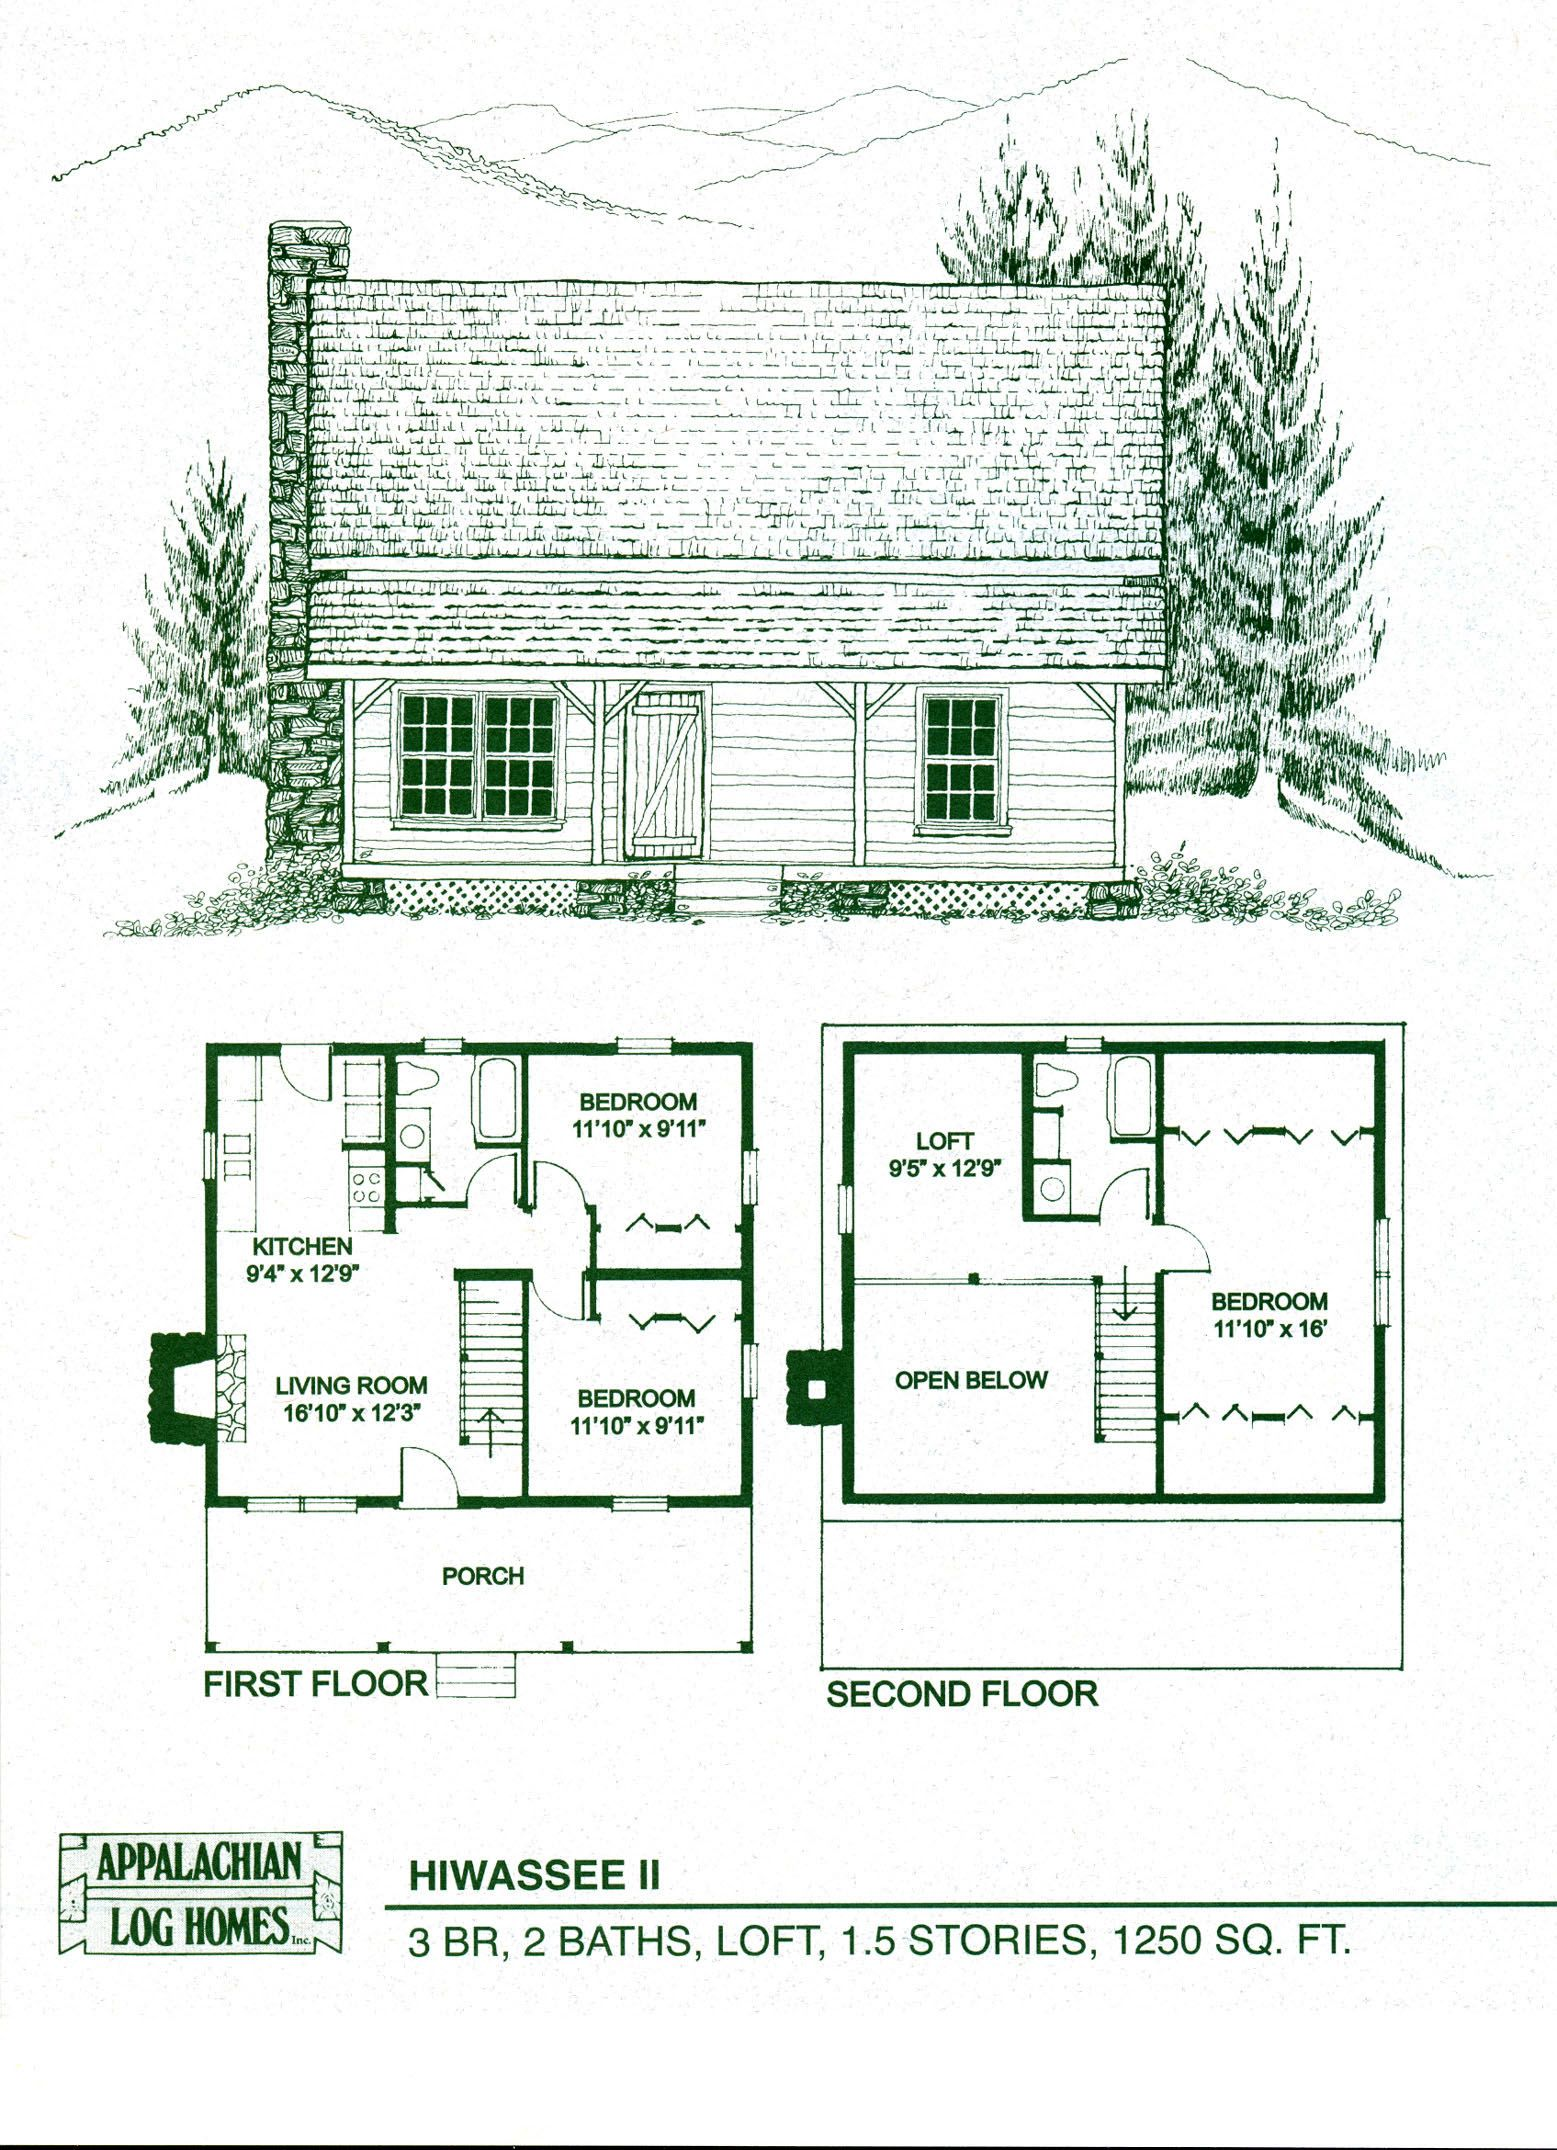 Log Home Floor Plans Log Cabin Kits Appalachian Log Homes Log Cabin Floor Plans Cabin House Plans Cabin Floor Plans